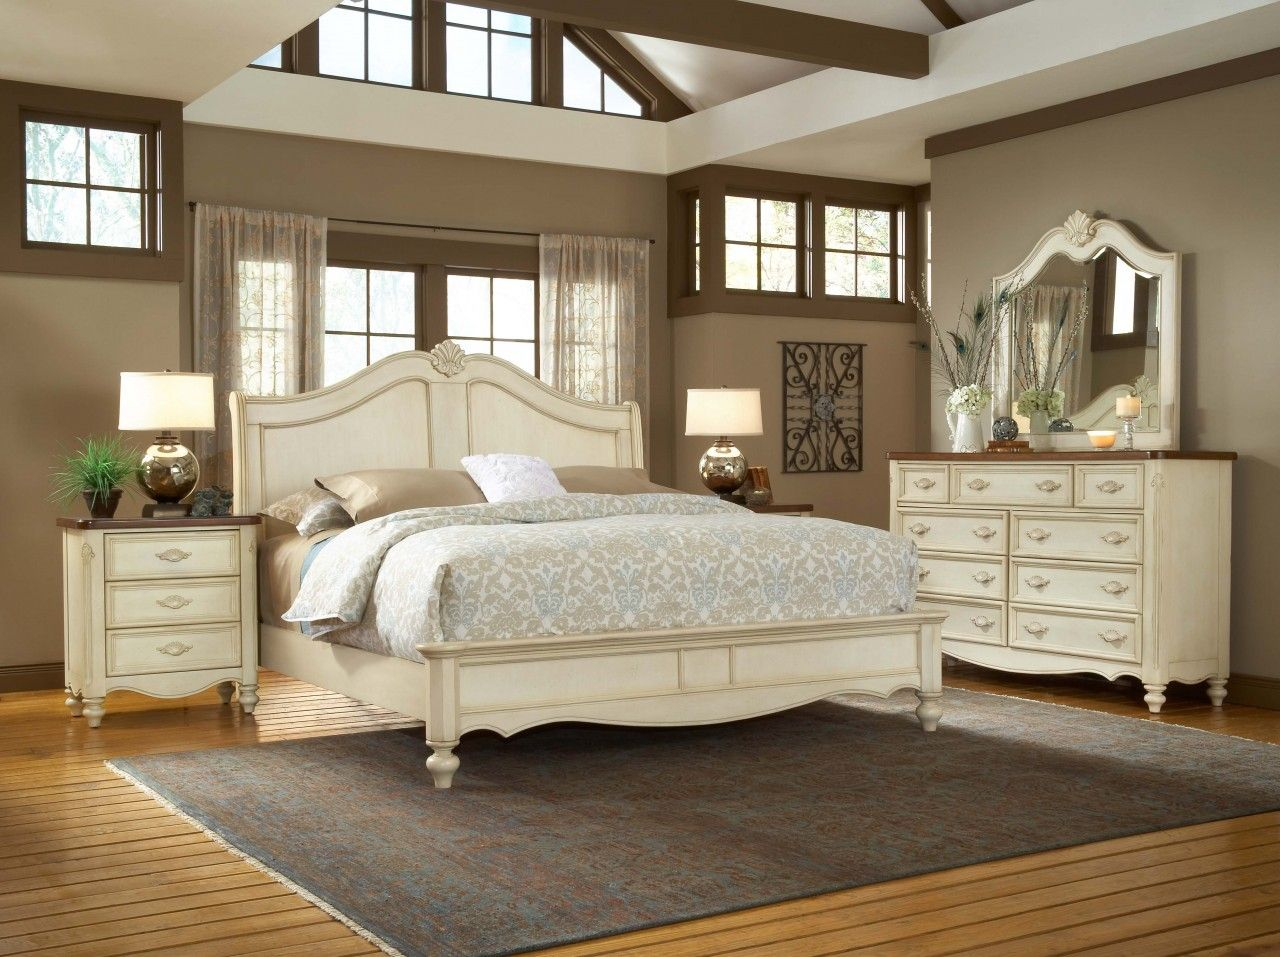 Top 25 Ideas About Vintage Rooms On Furniture  Suites 13119 White Wood Bedroom  Furniture Set Leather. Ashley Furniture White Bedroom Suite   Mark Cooper Research